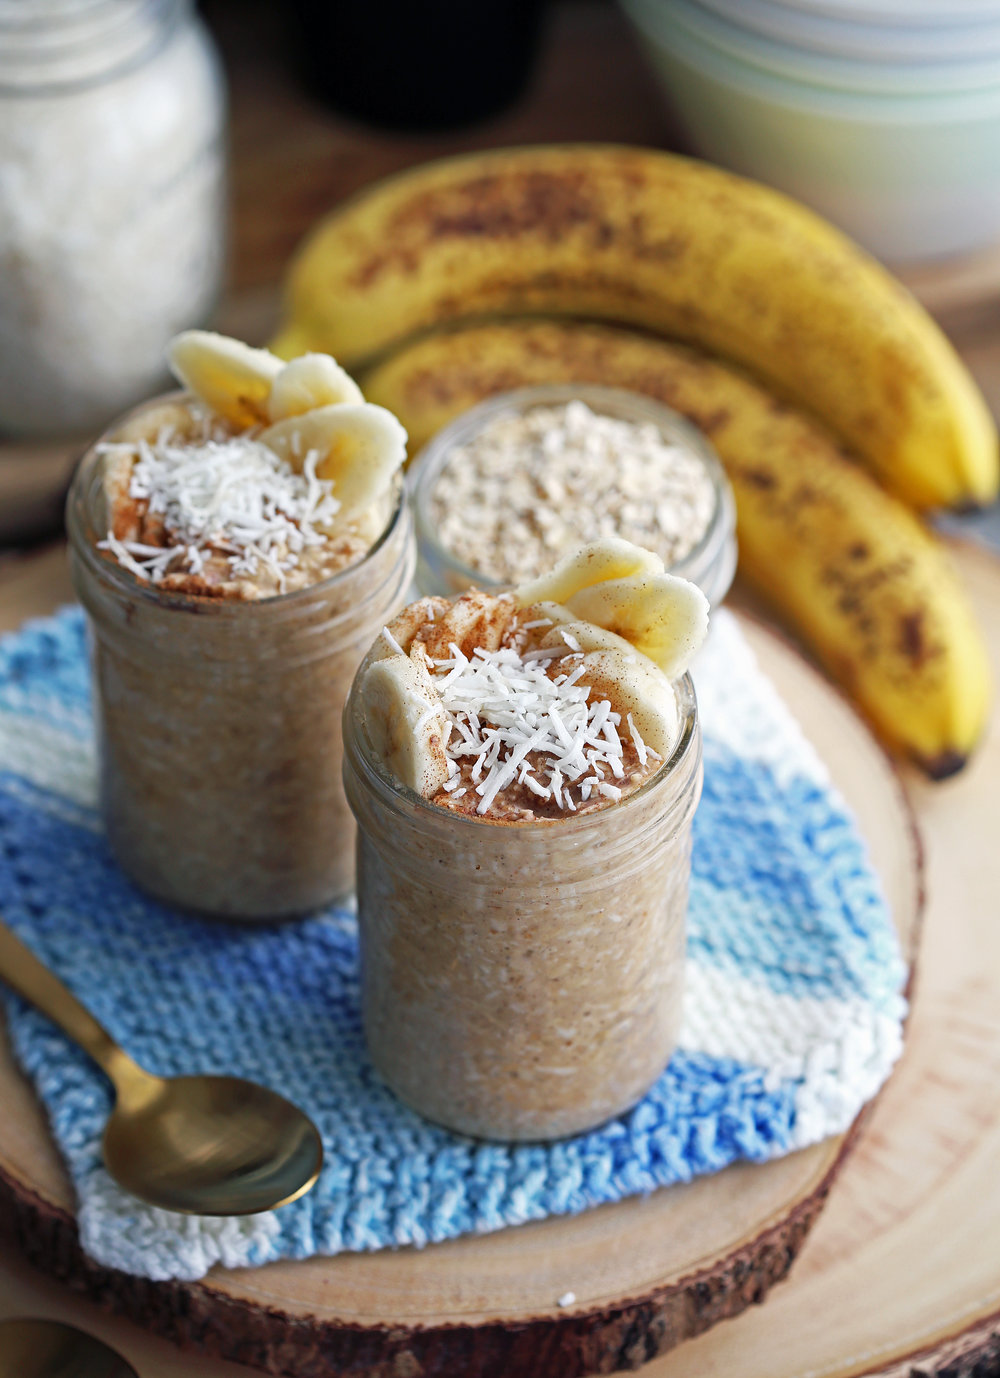 Banana Coconut Cream Pie Overnight Oats topped with bananas, cinnamon, and coconut in two mason jars.